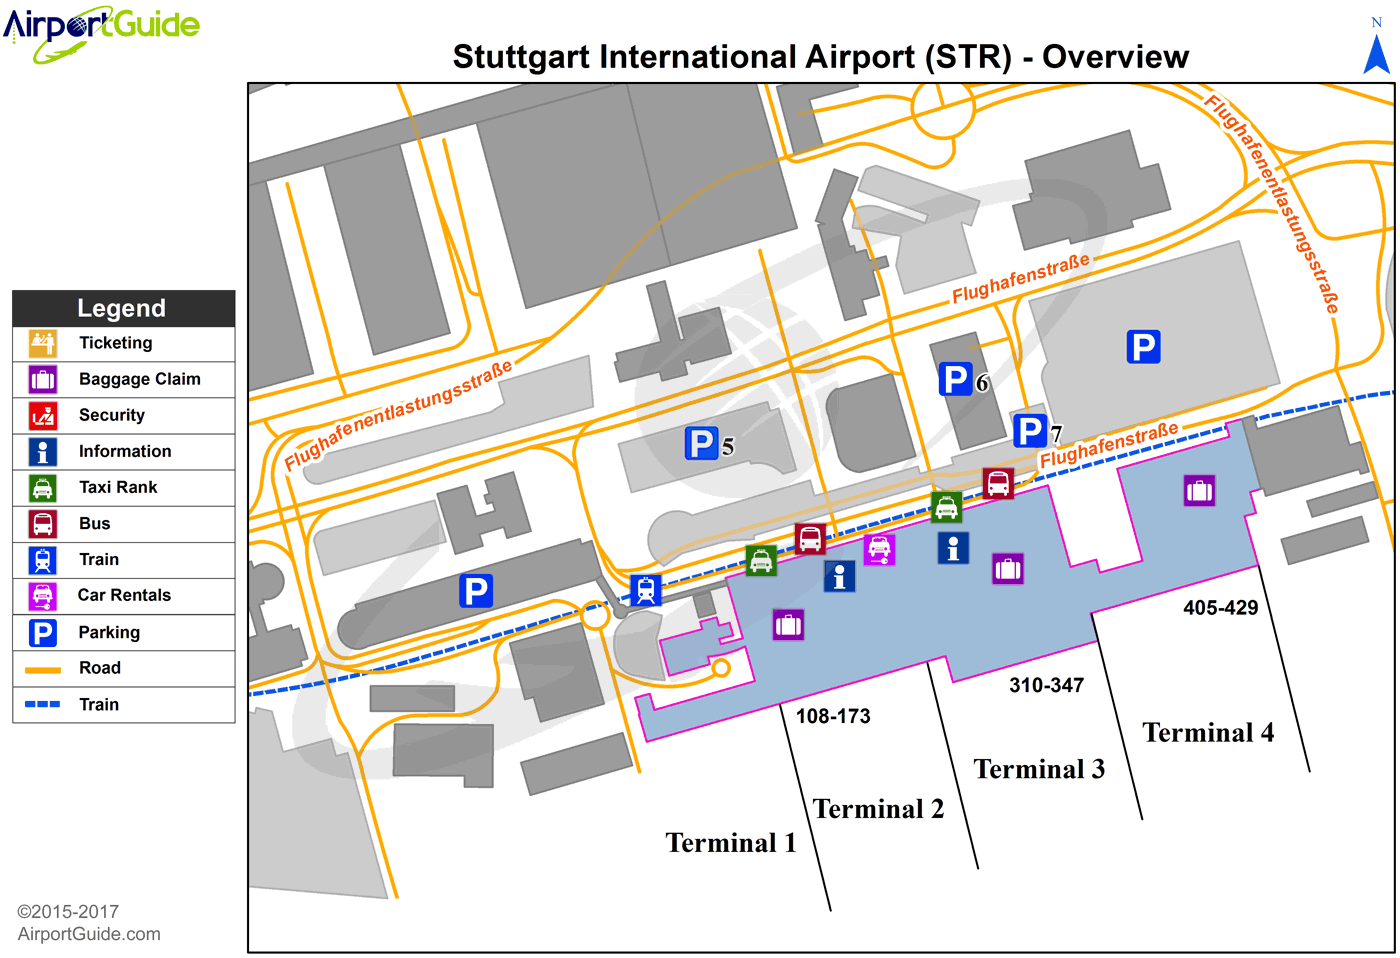 Stuttgart - Stuttgart (STR) Airport Terminal Map - Overview